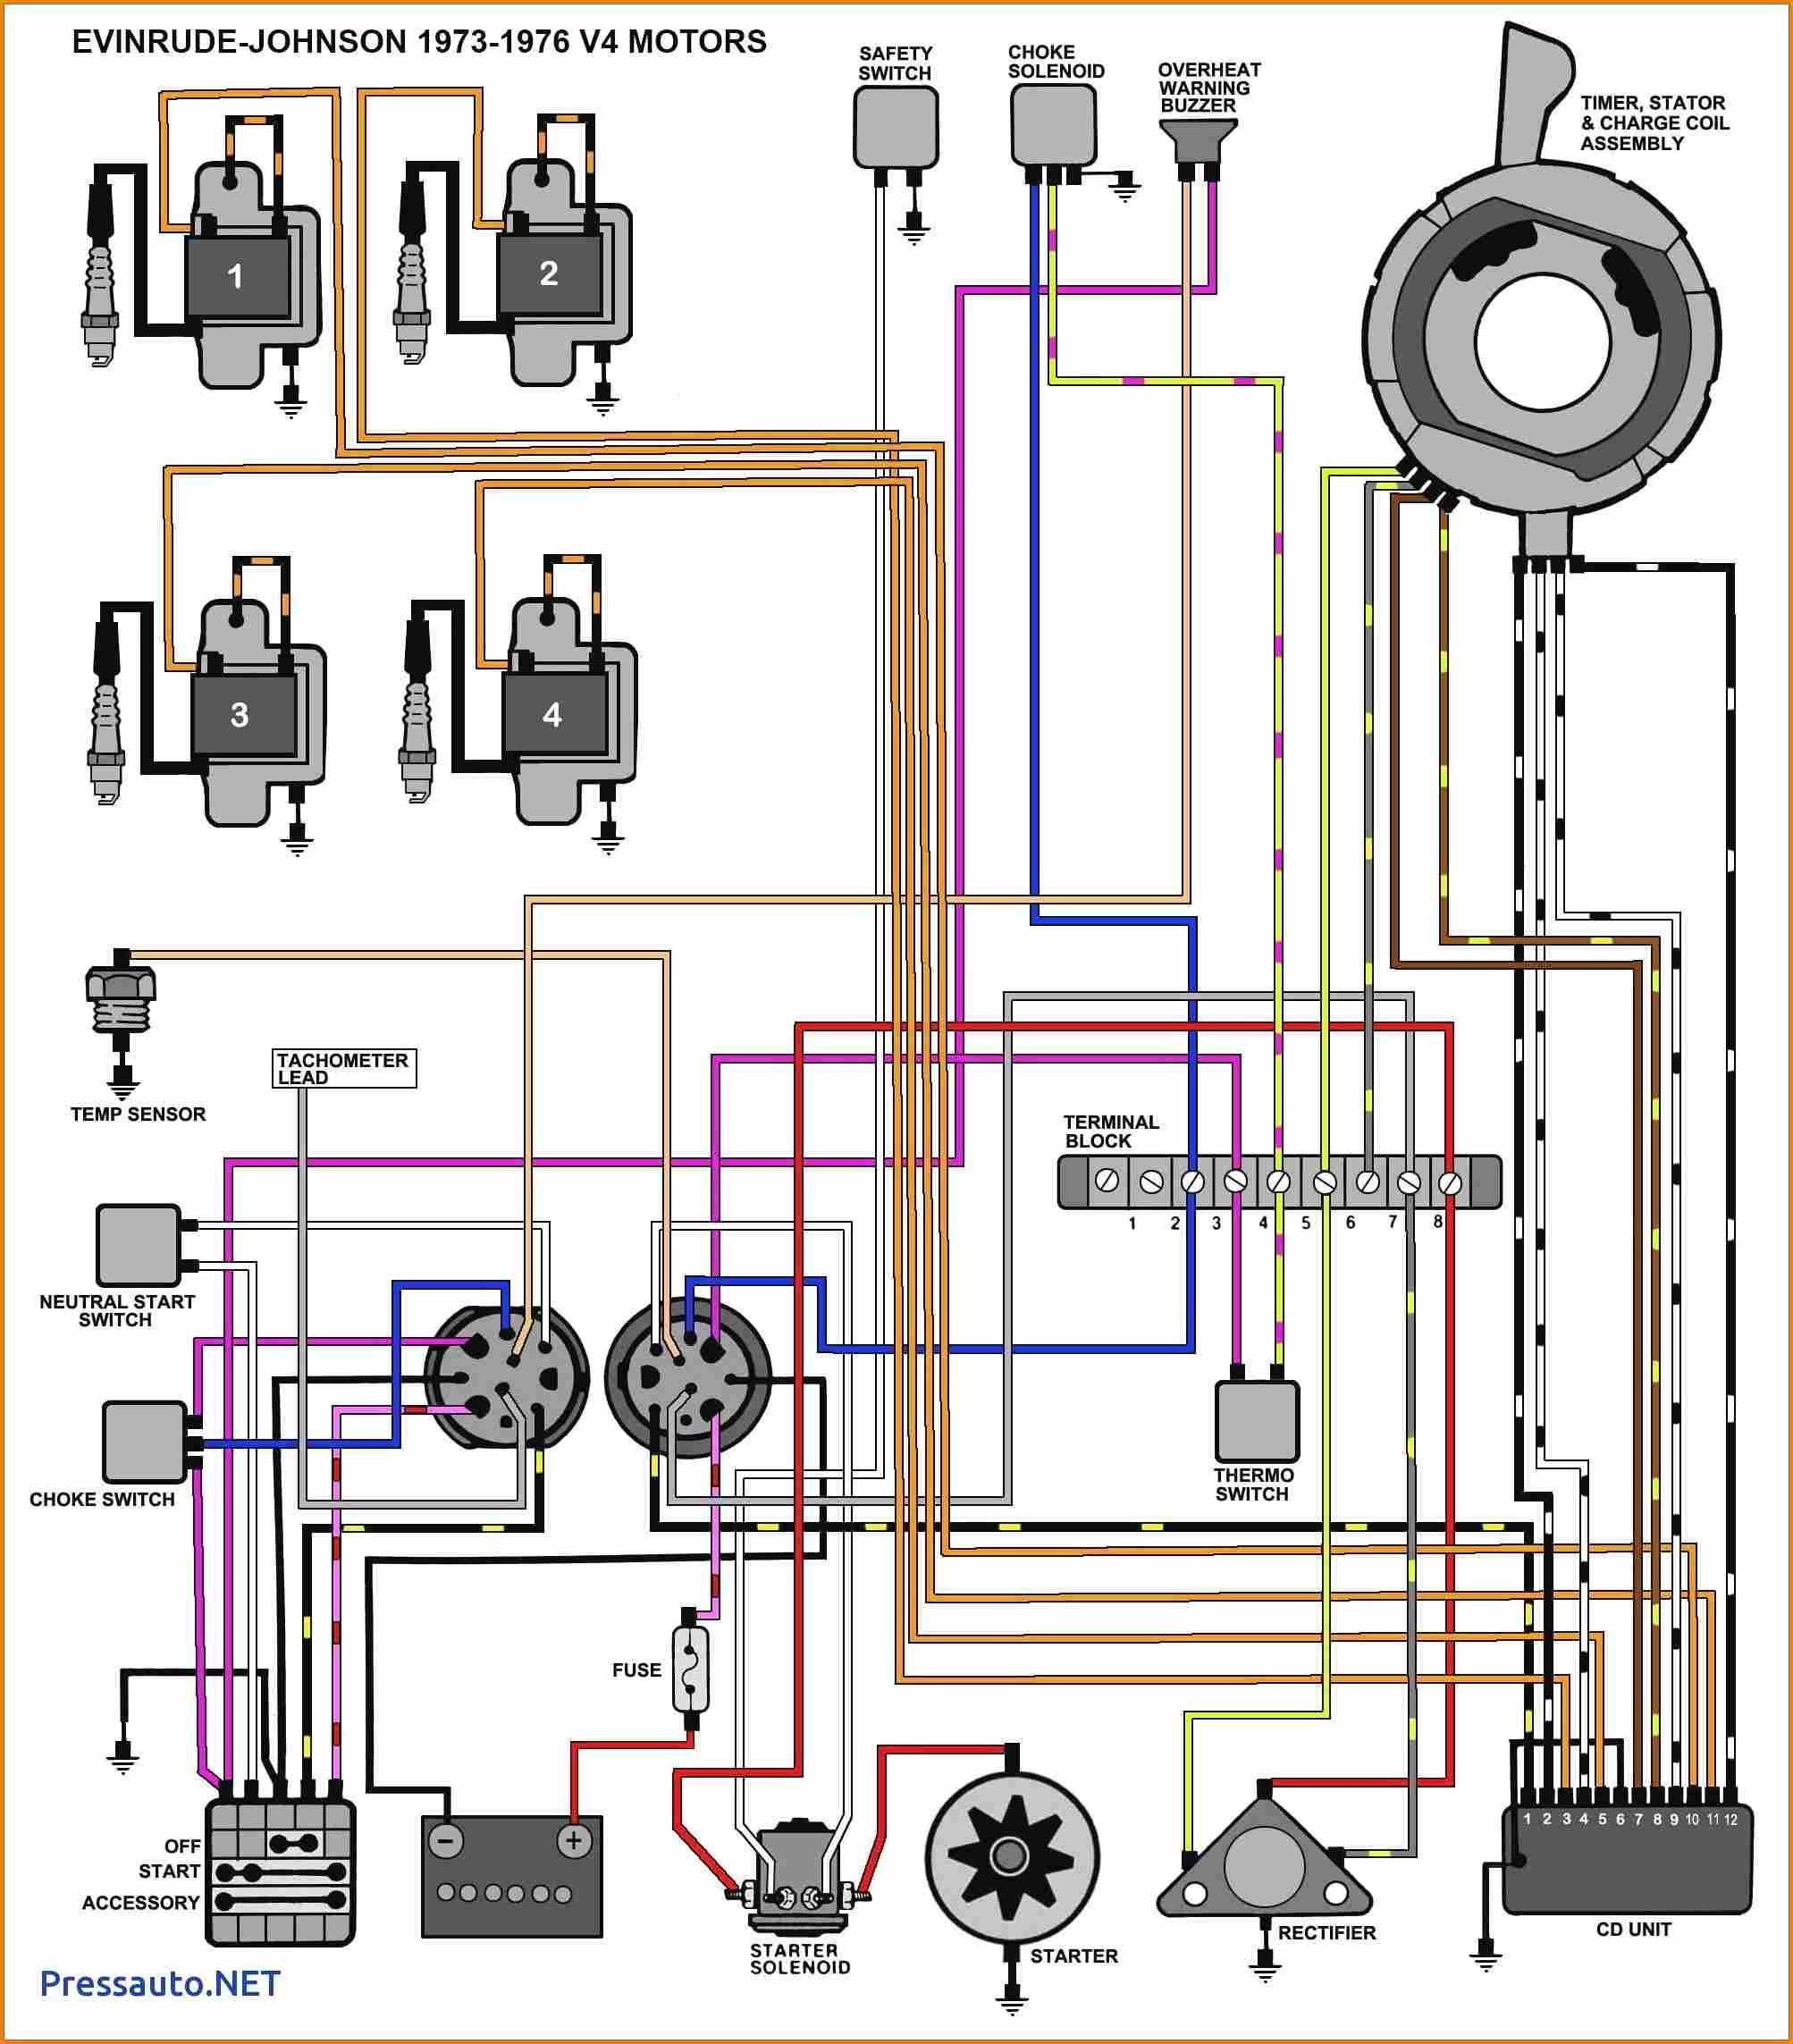 benz c32 engine wiring harness 115 wire harness diagram index wiring diagrams  115 wire harness diagram index wiring